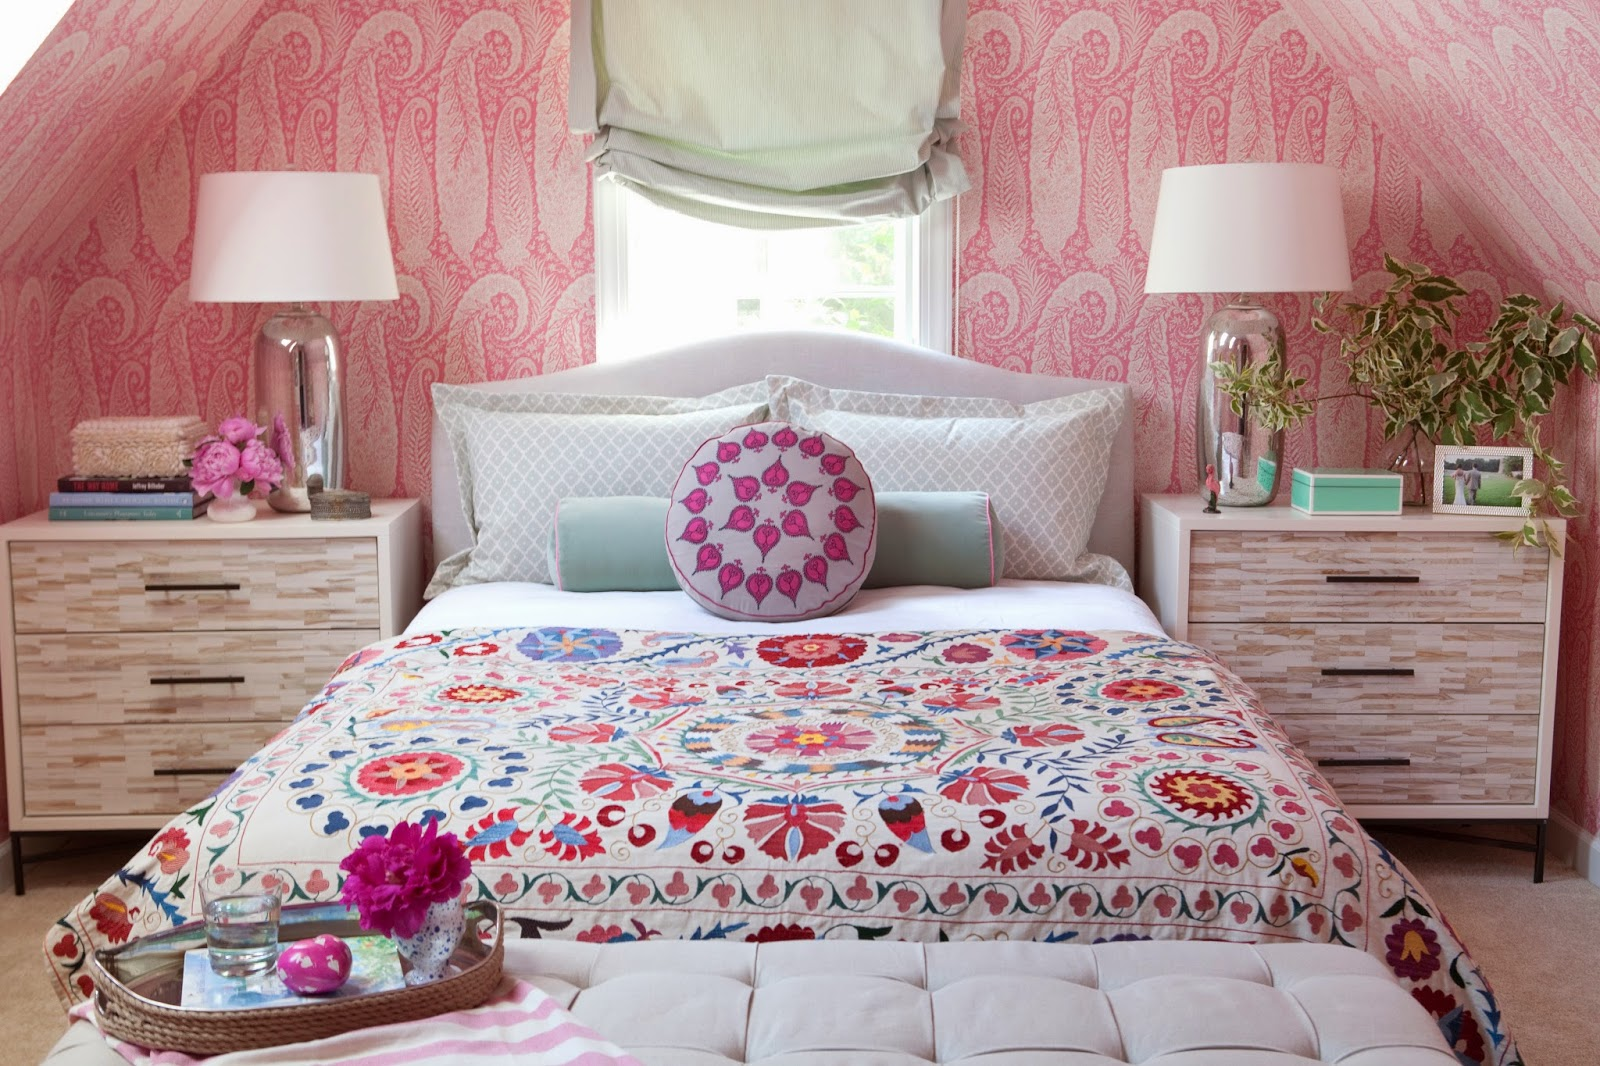 1000+ Images About Pink Bedrooms For Grown-ups On